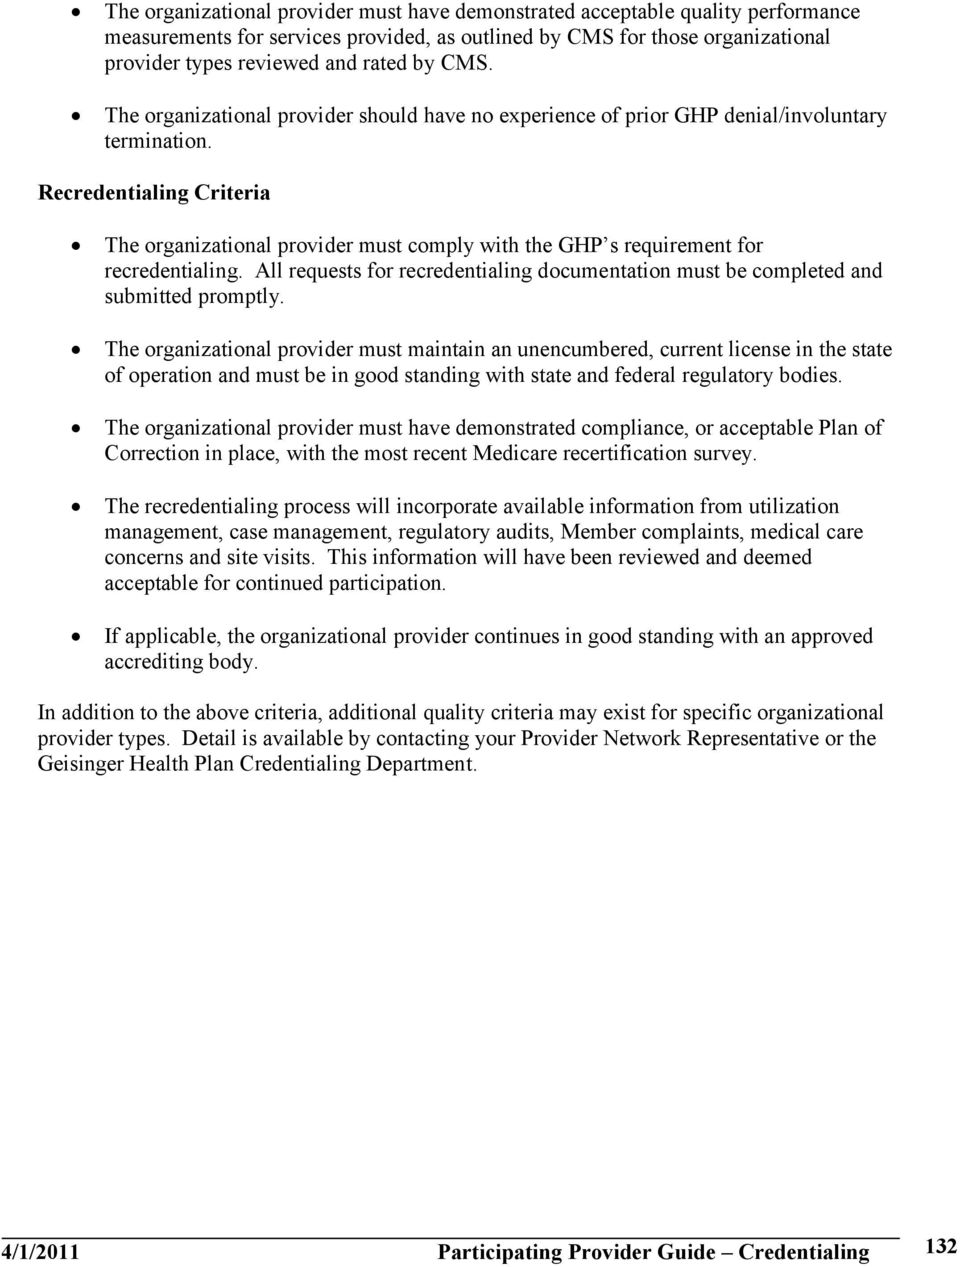 Recredentialing Criteria The organizational provider must comply with the GHP s requirement for recredentialing.